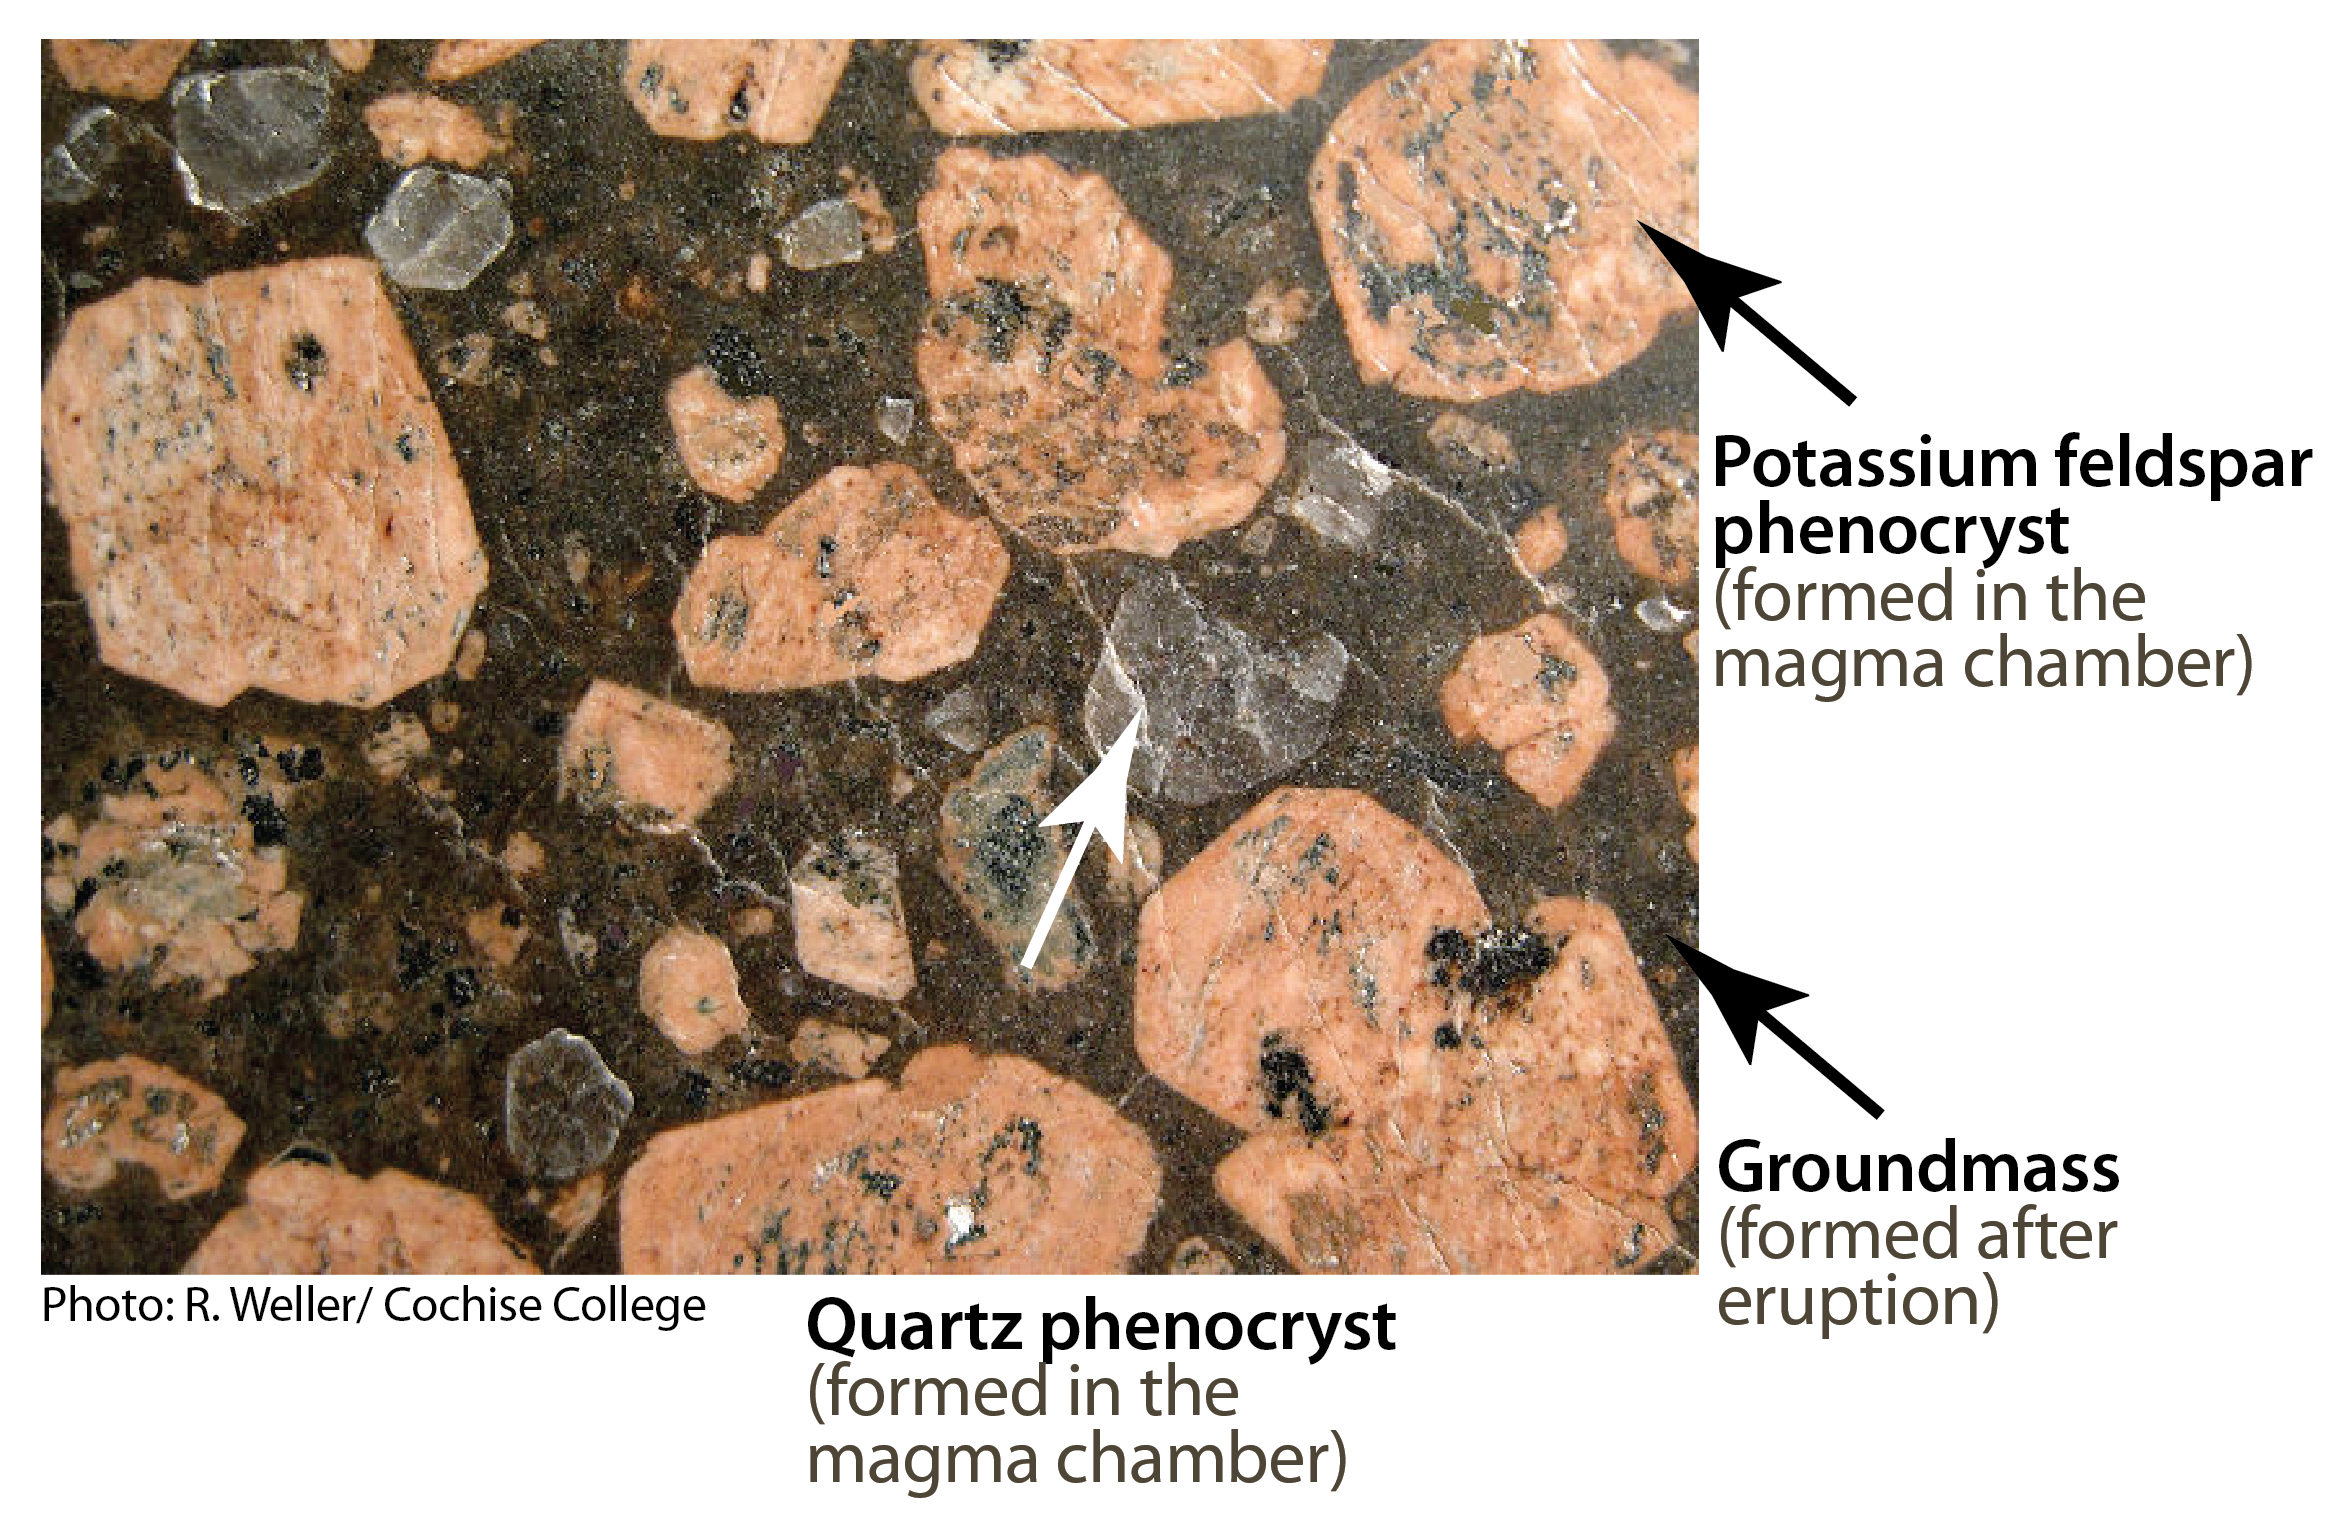 Porphyritic rhyolite with quartz and potassium feldspar phenocrysts. Porphyritic texture (when different crystal sizes are present) is an indication that melted rock did not cool at a consistent rate. [KP]